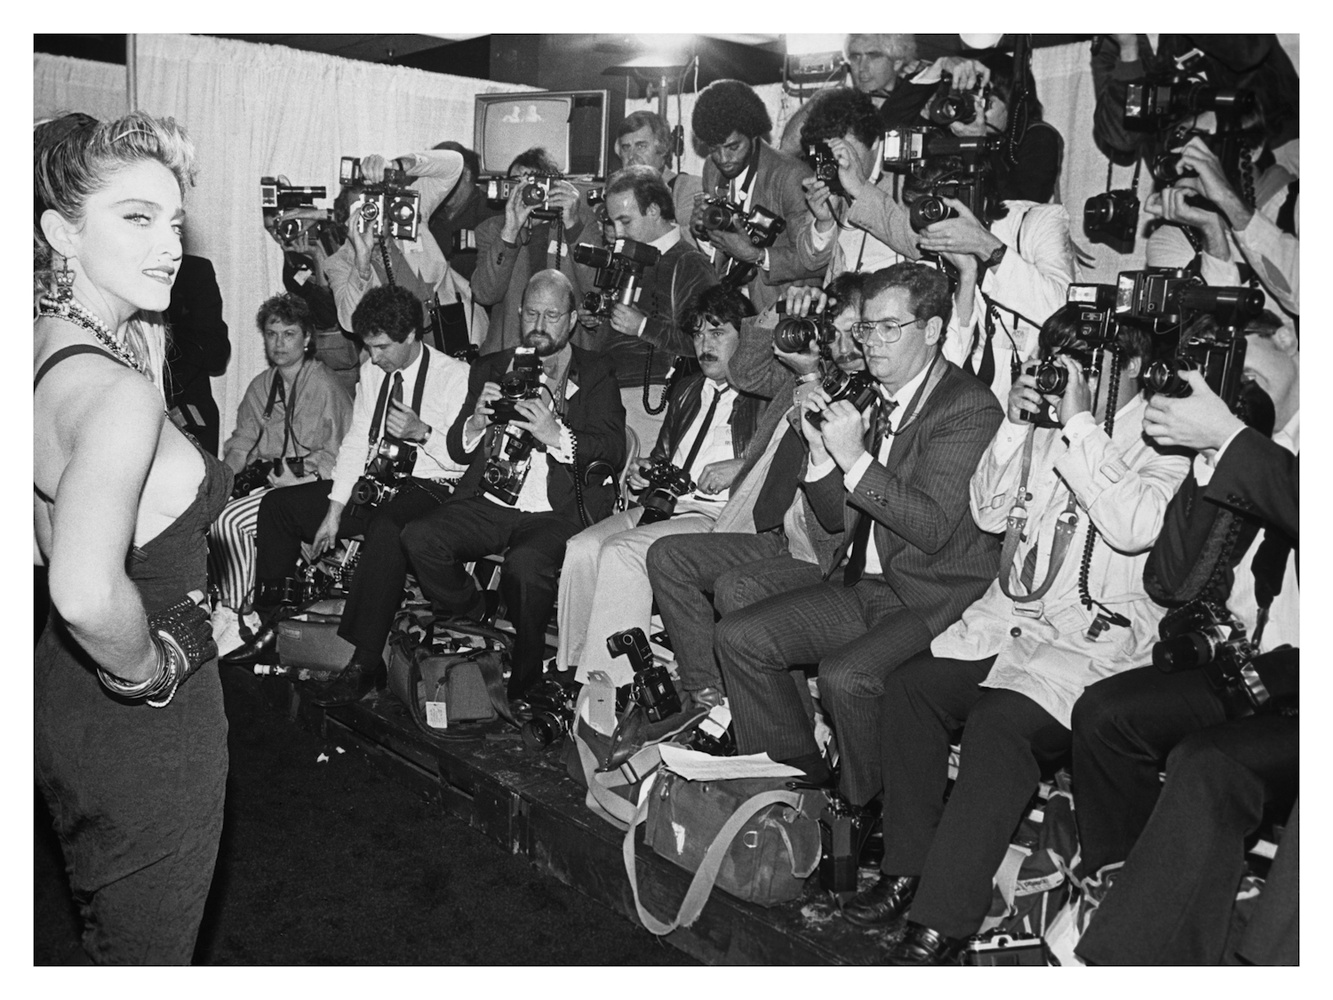 "Madonna Meets The Press, 1982 - Every year, I always hired by Dick Clark to photograph is American Music Awards.  This gave to total access everywhere. While all the press were sequestered in the ""Bull Pen"", I was free to make a creative photograph of this new singer Madonna. When the photo was published all over the world, the publicist expressed his displeasure. He did not care about works or  art, all he cared about was DC Productions logo in every photo. Needless to say, every magazine run my Madonna photo. All over the world!"